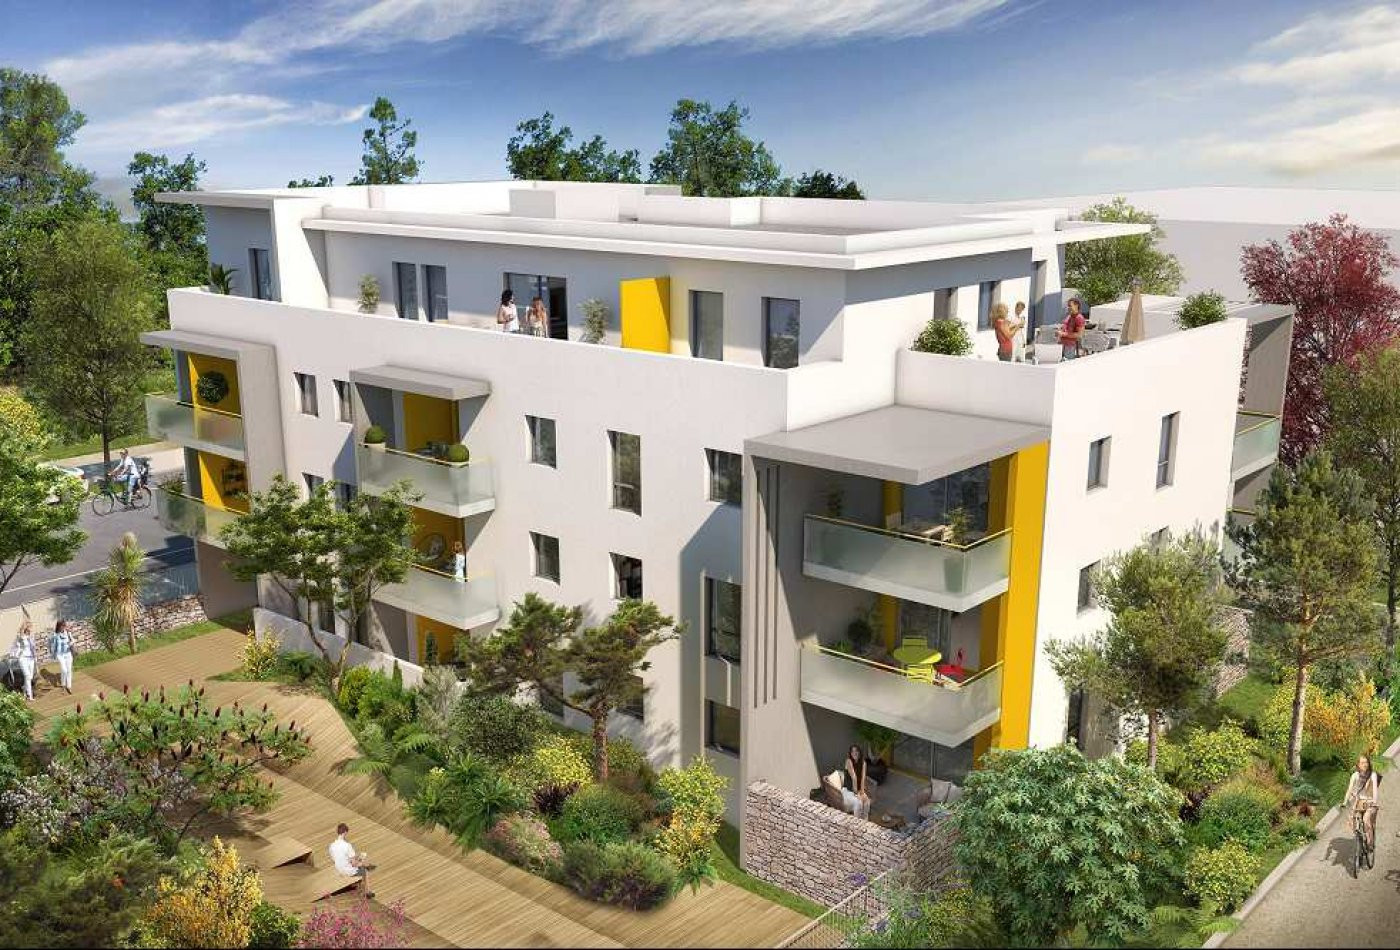 Programme neuf Montpellier Hérault 3455699 Opus conseils immobilier